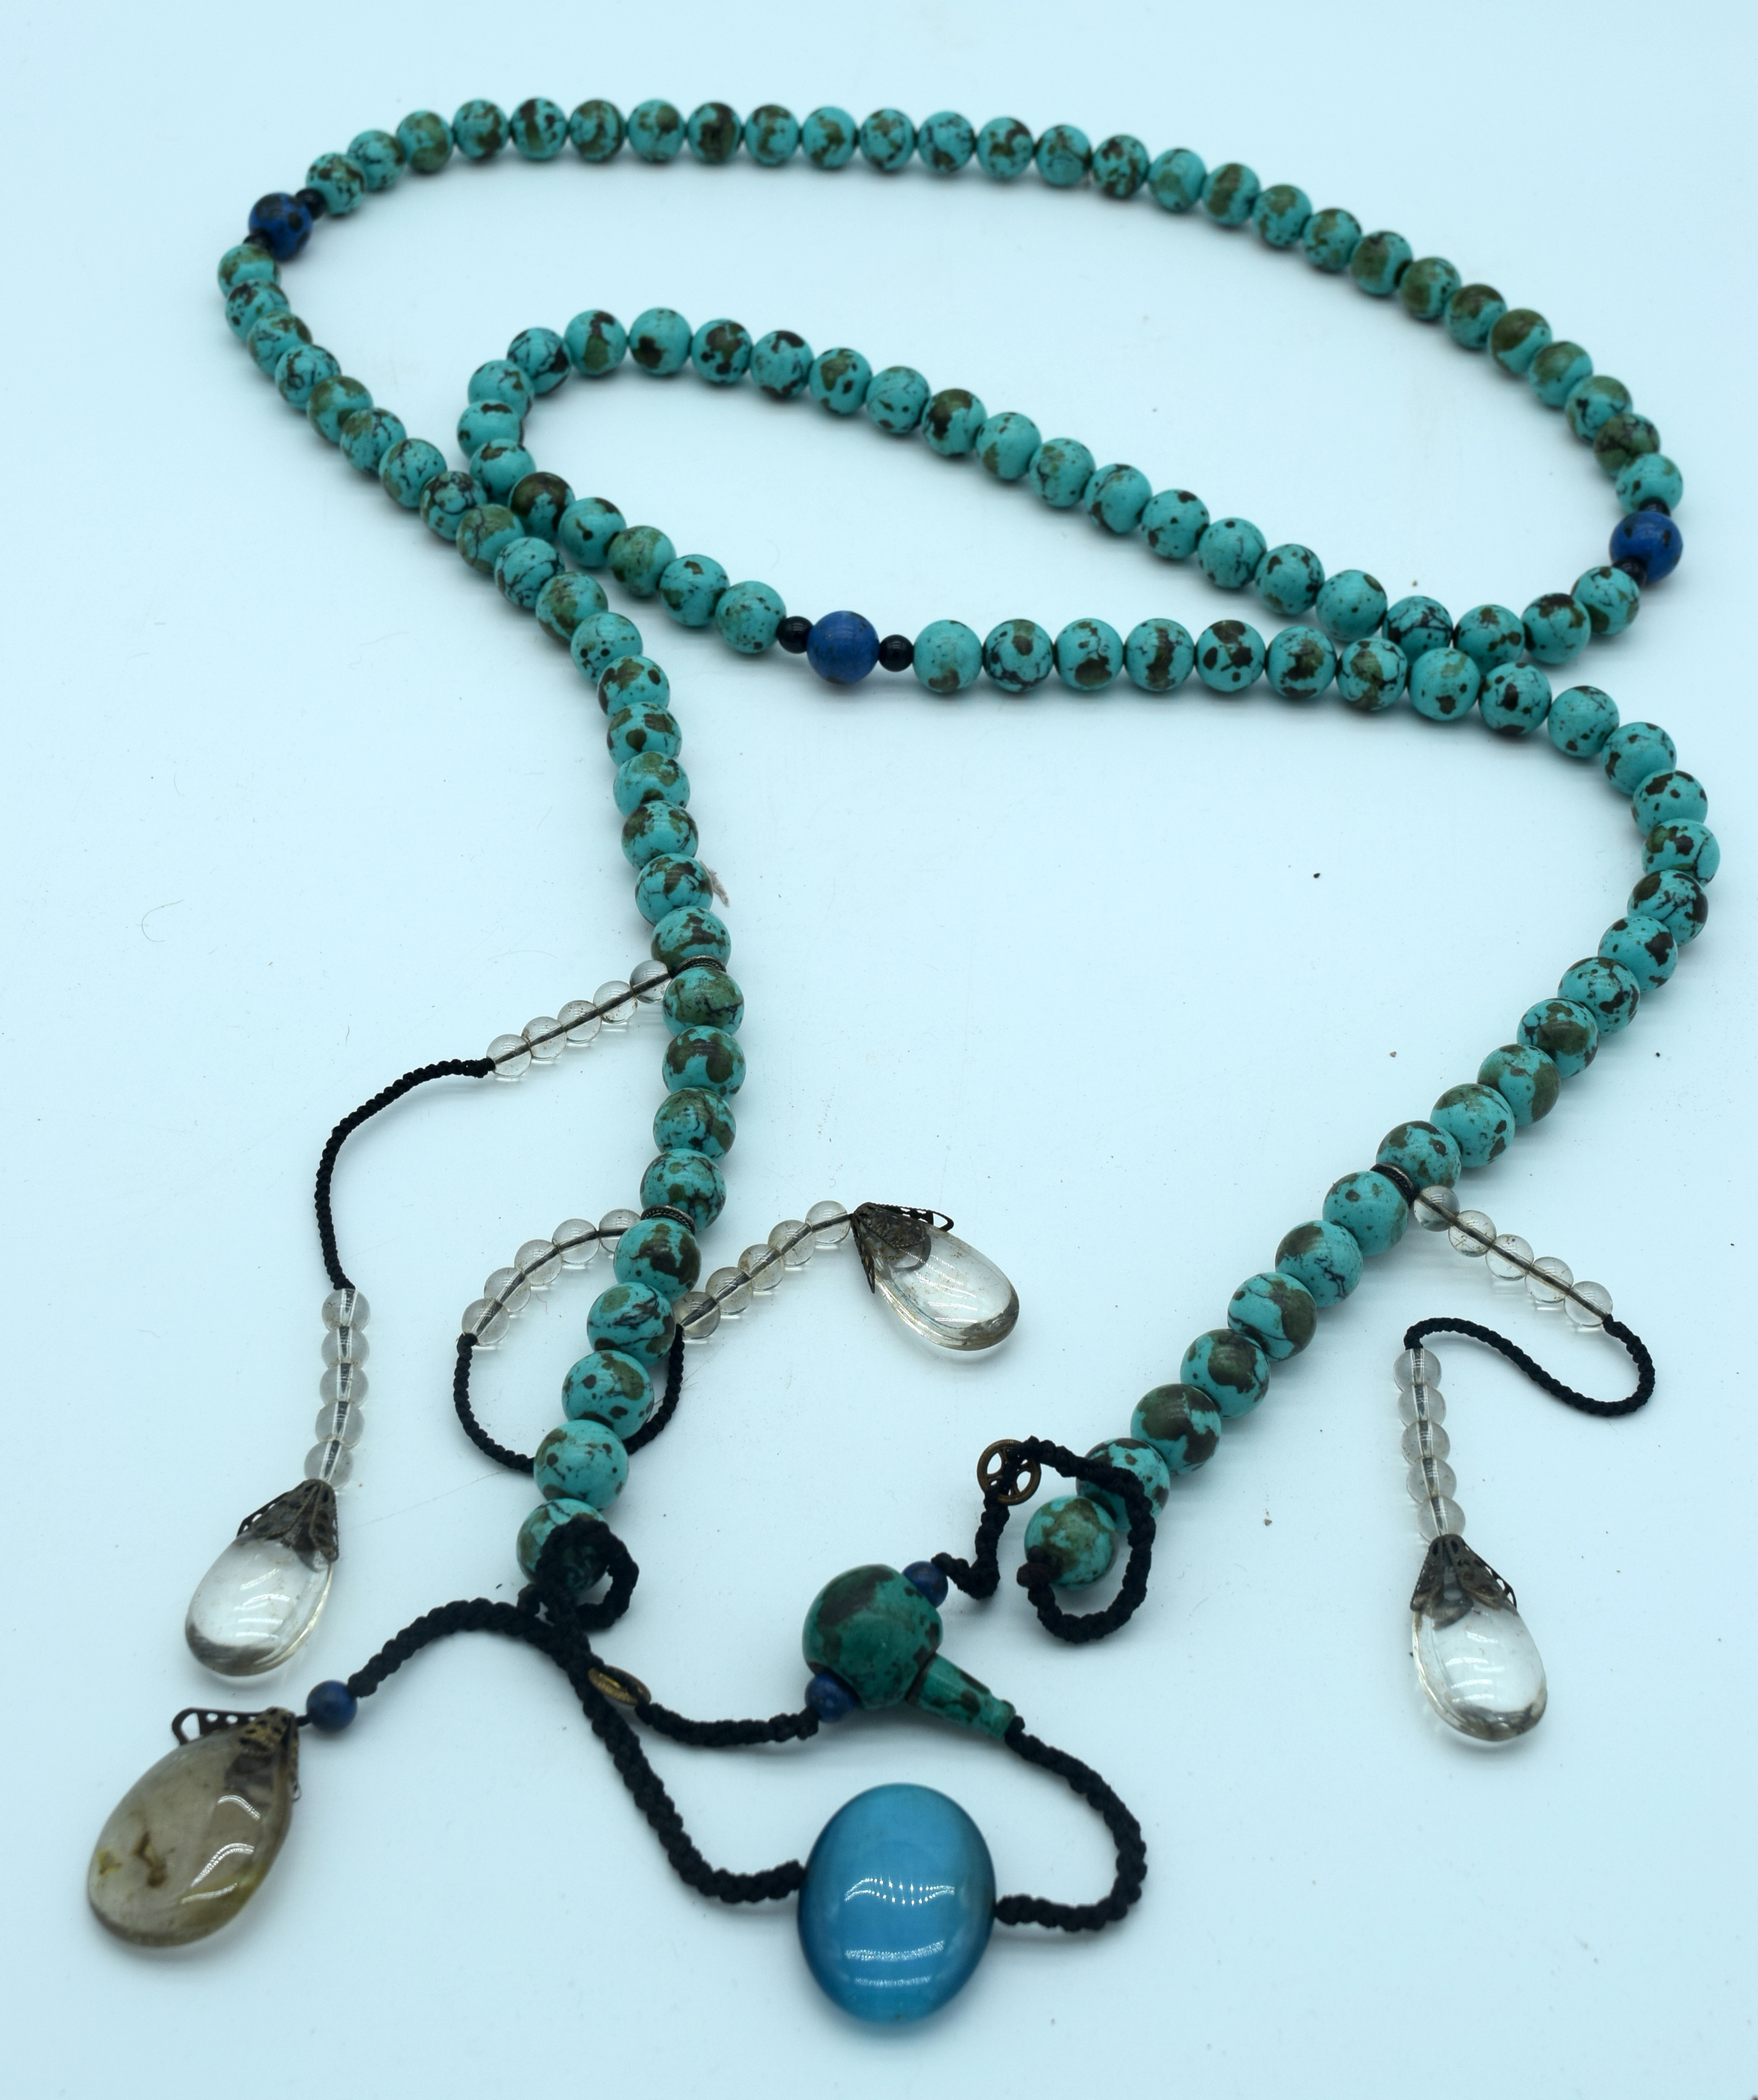 A long Turquoise stone necklace with hanging glass pendants 170cm. - Image 2 of 2